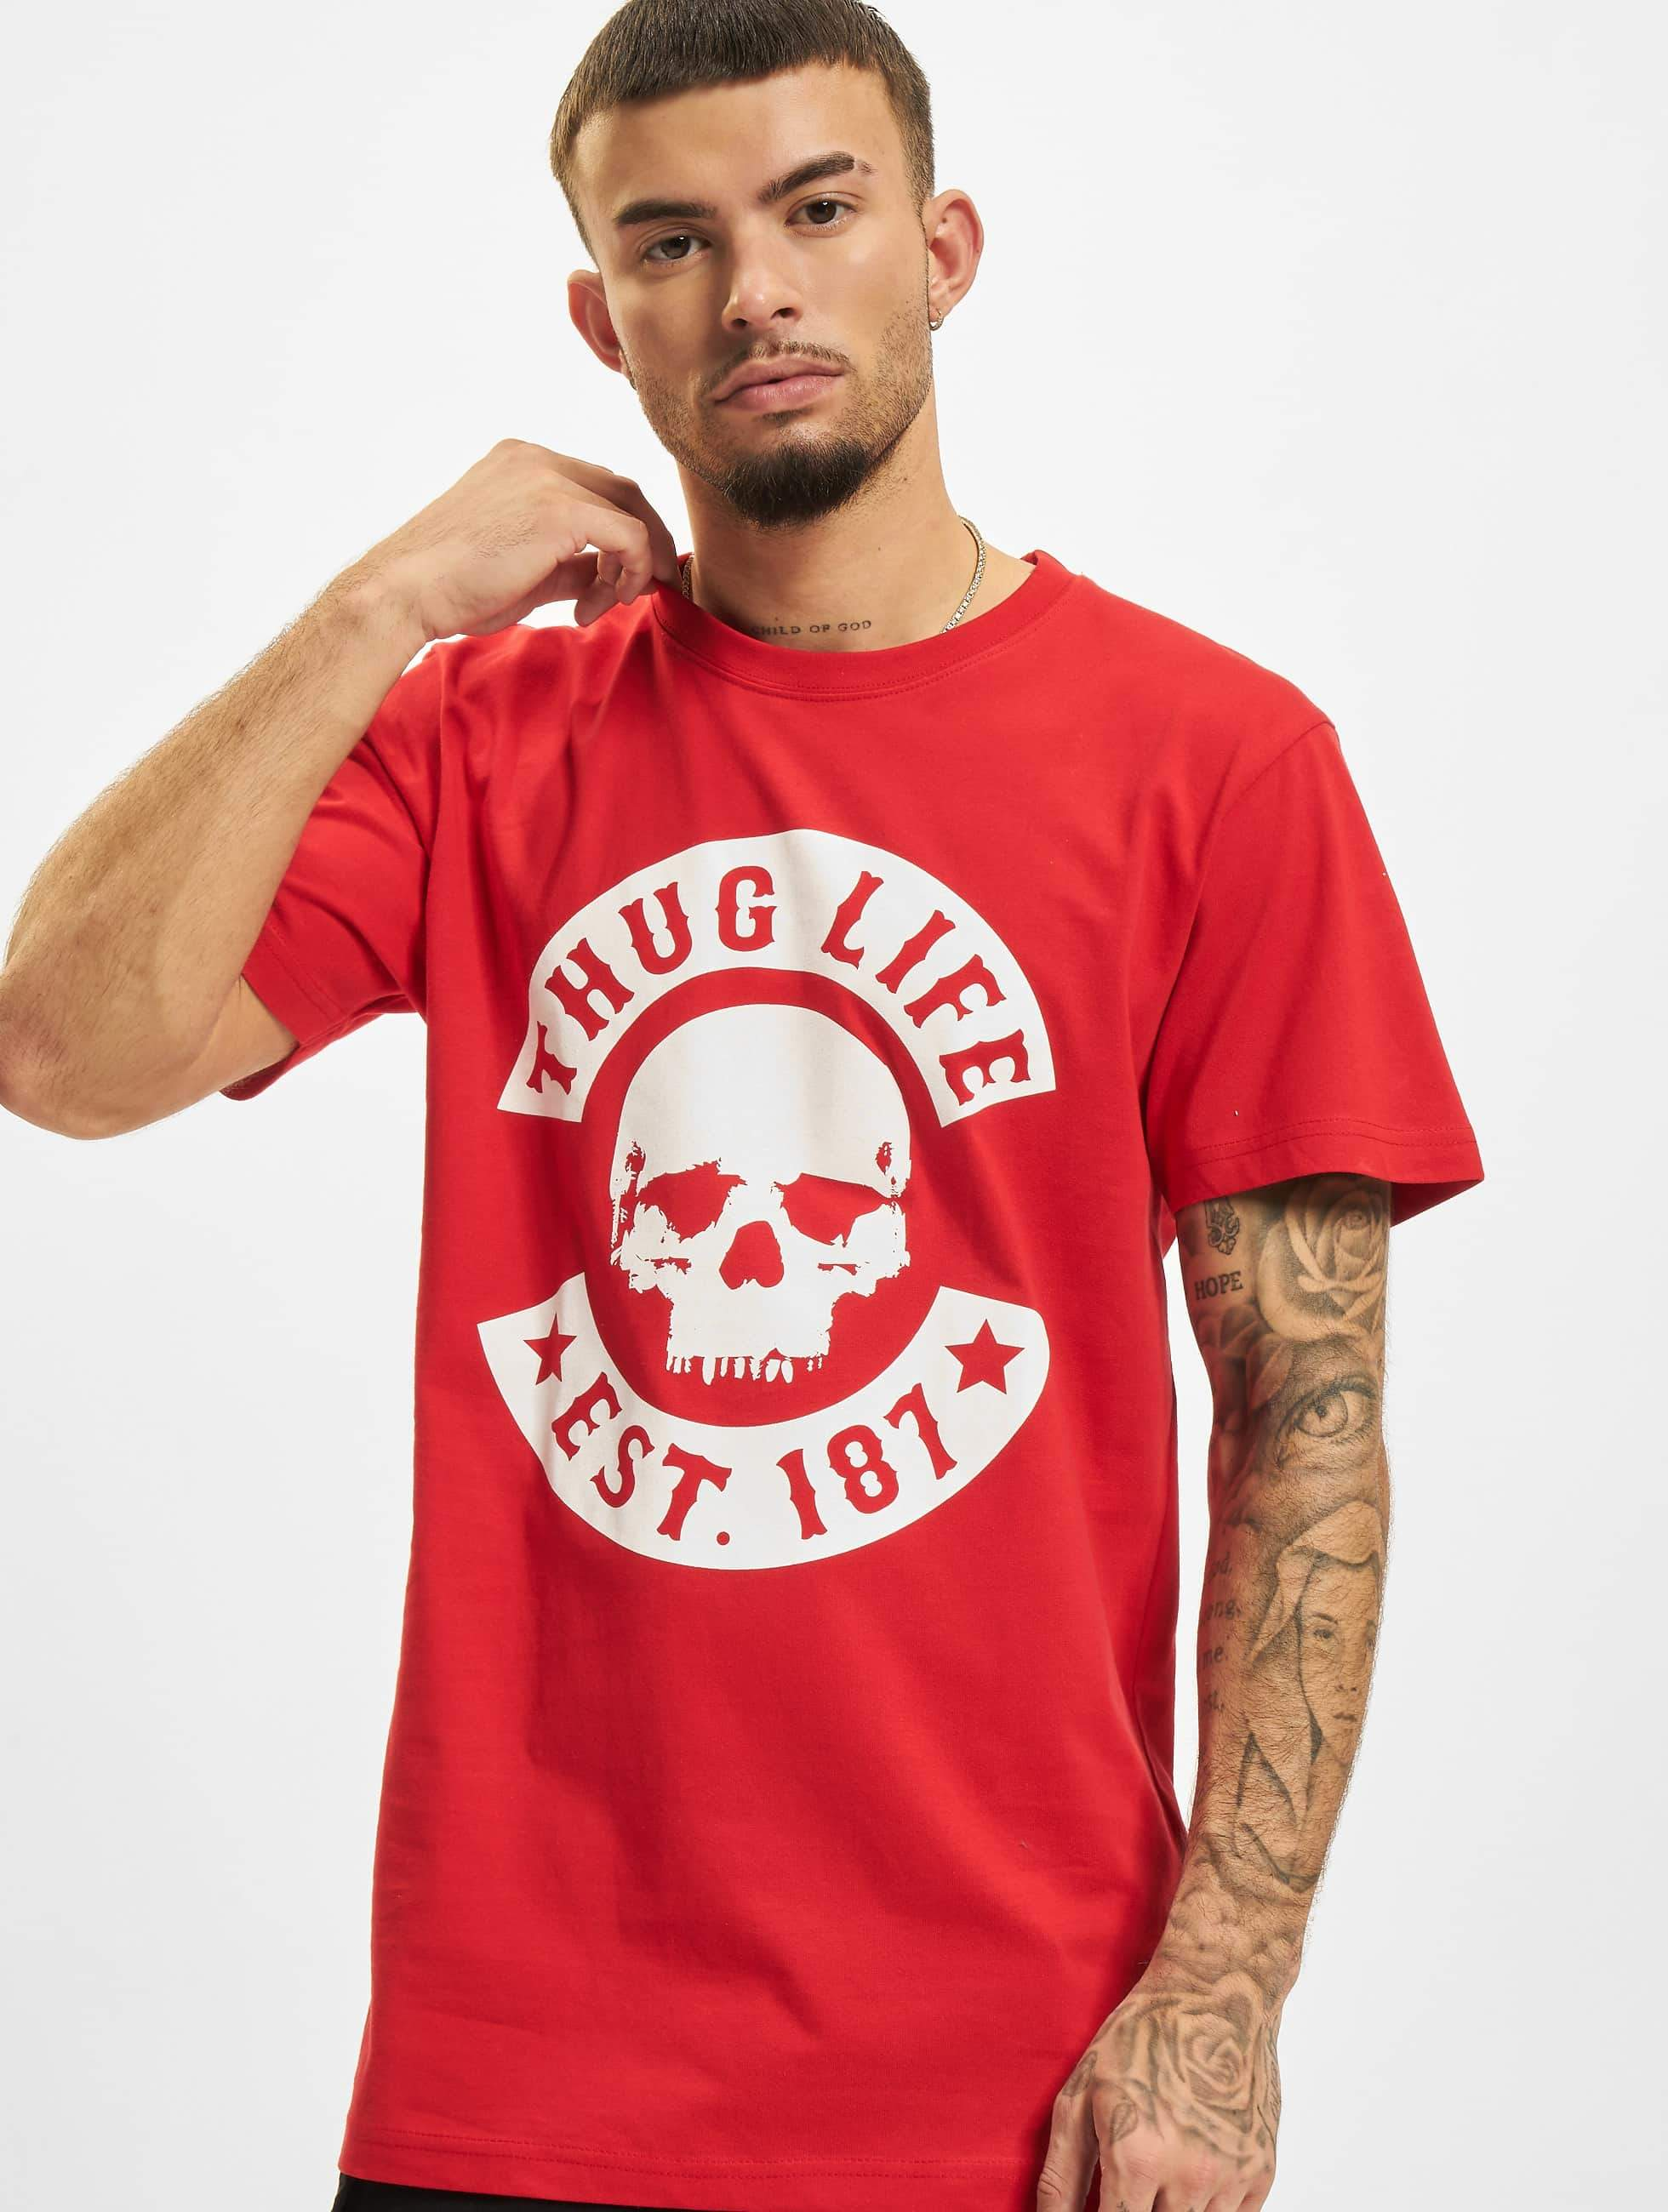 Thug Life / T-Shirt B.Skull in red 6XL